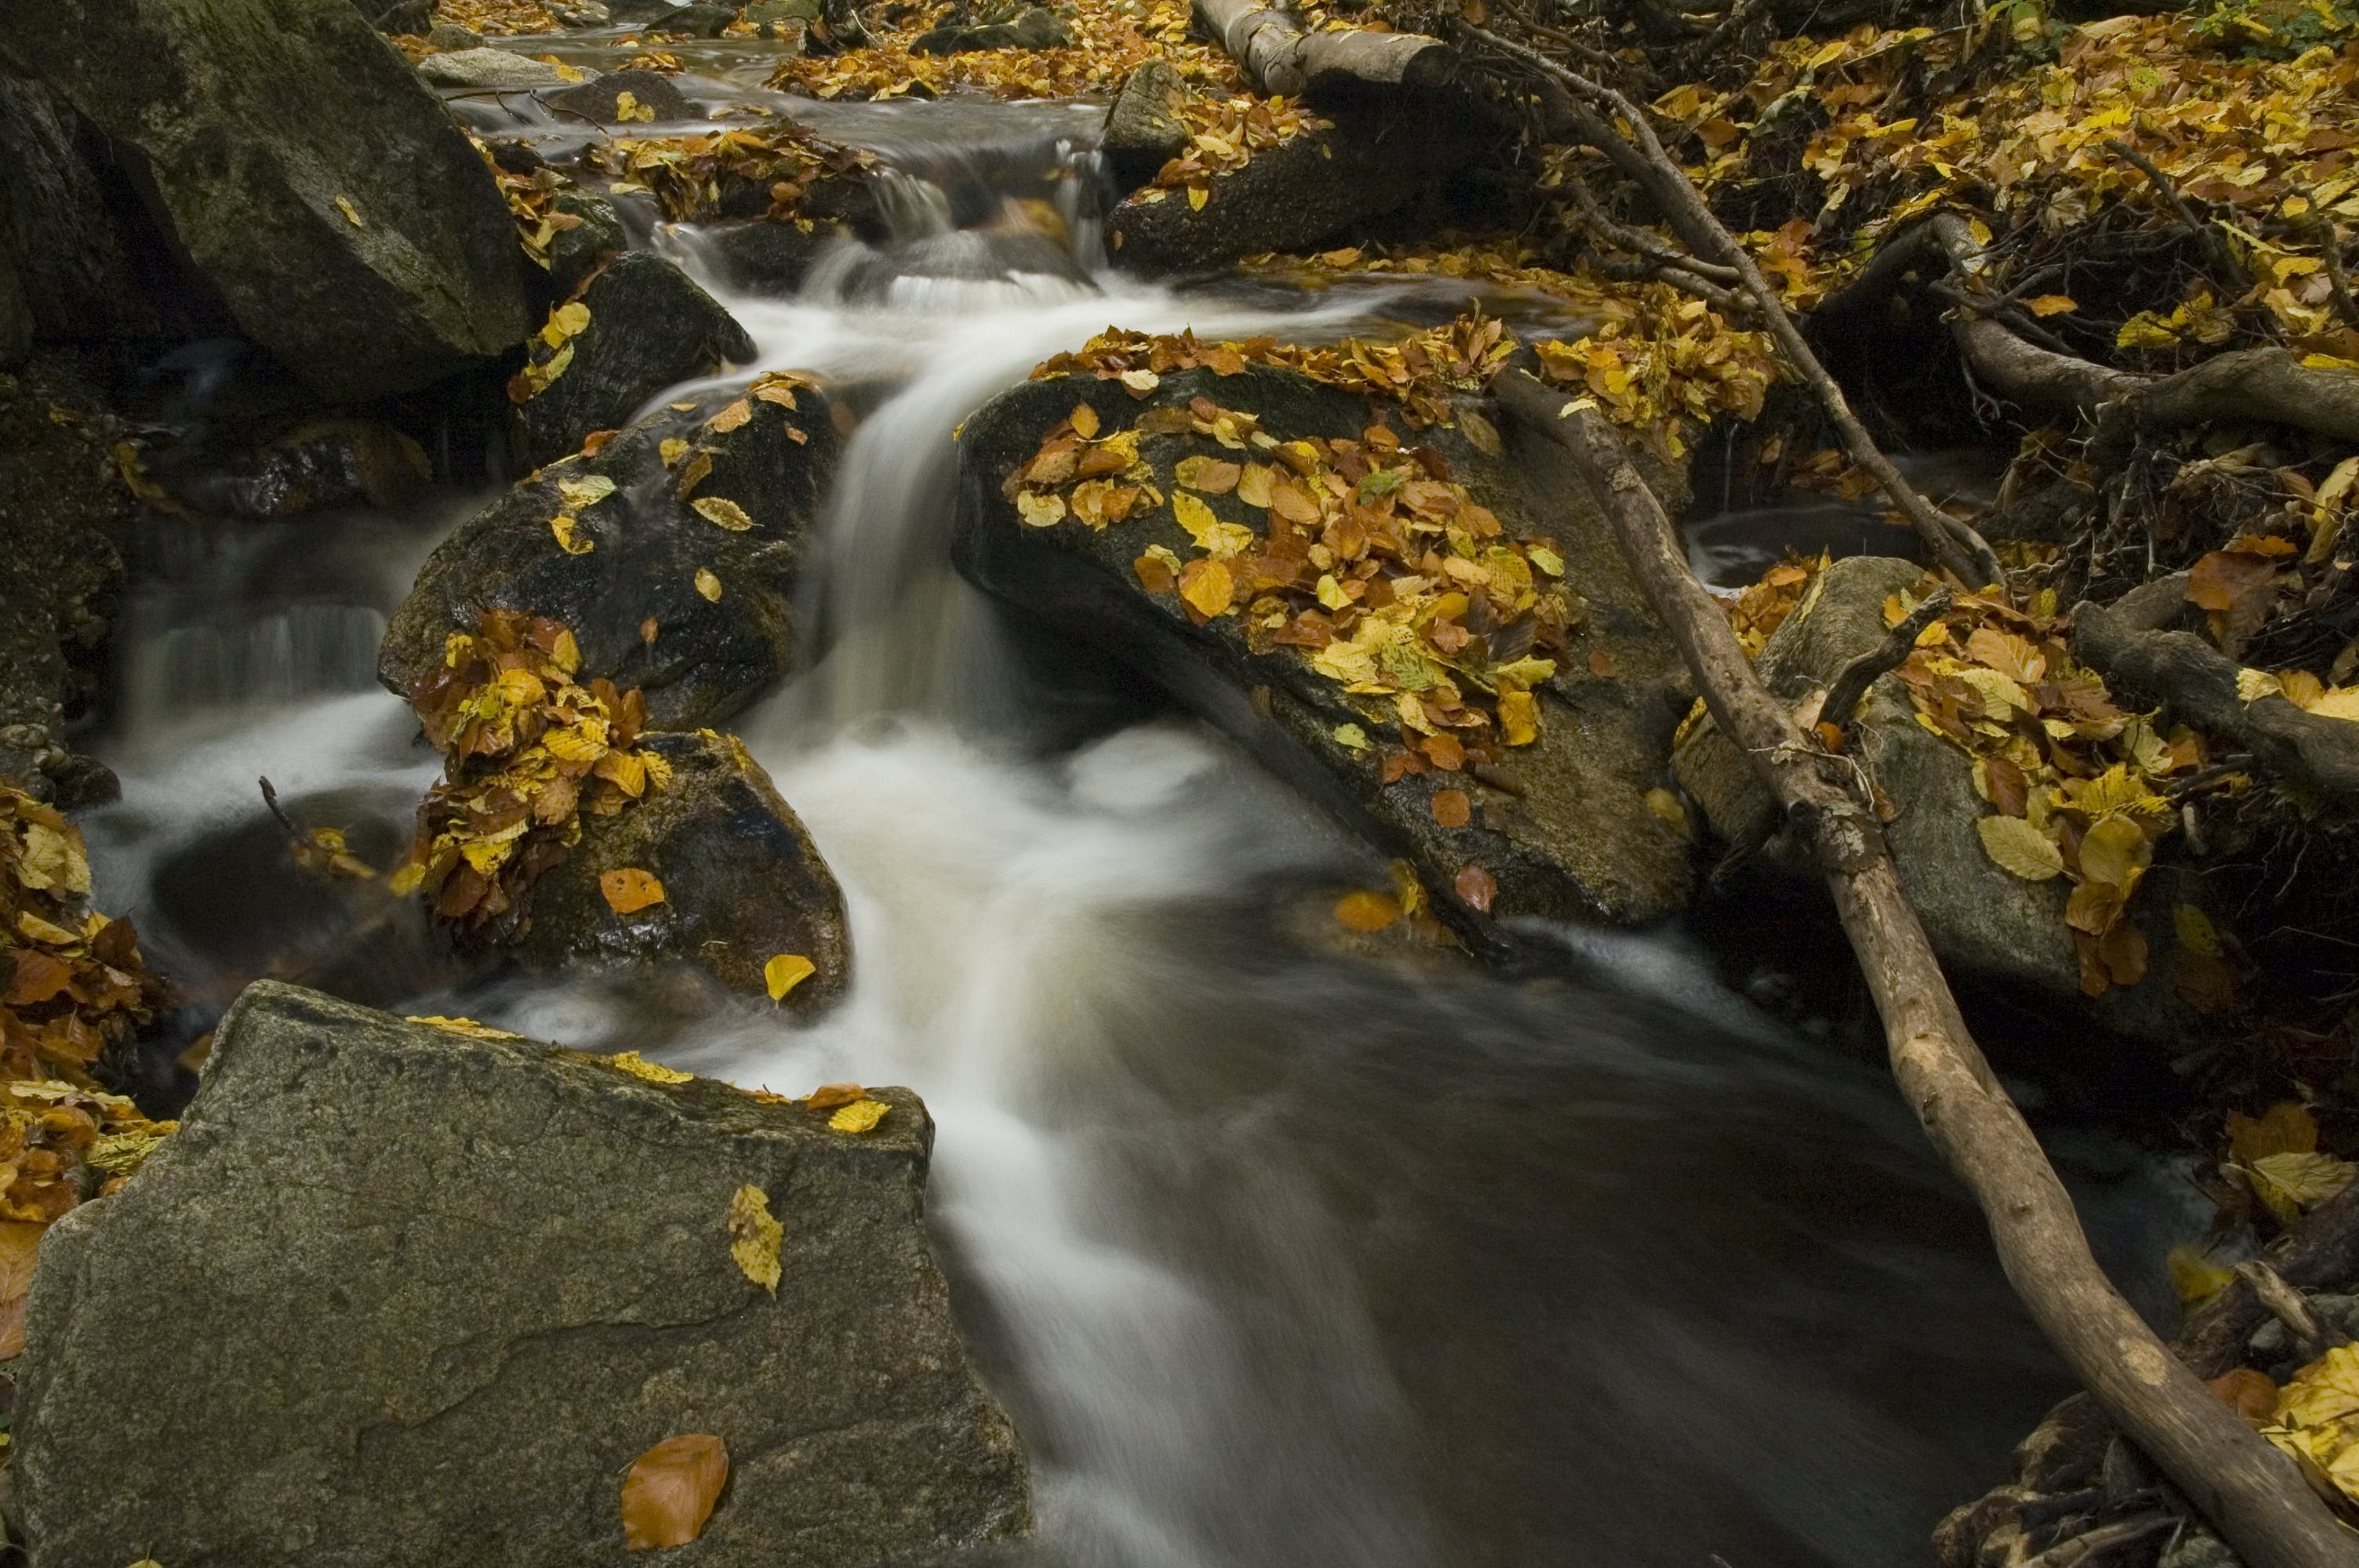 Time-lapse Photography of Flowing Water